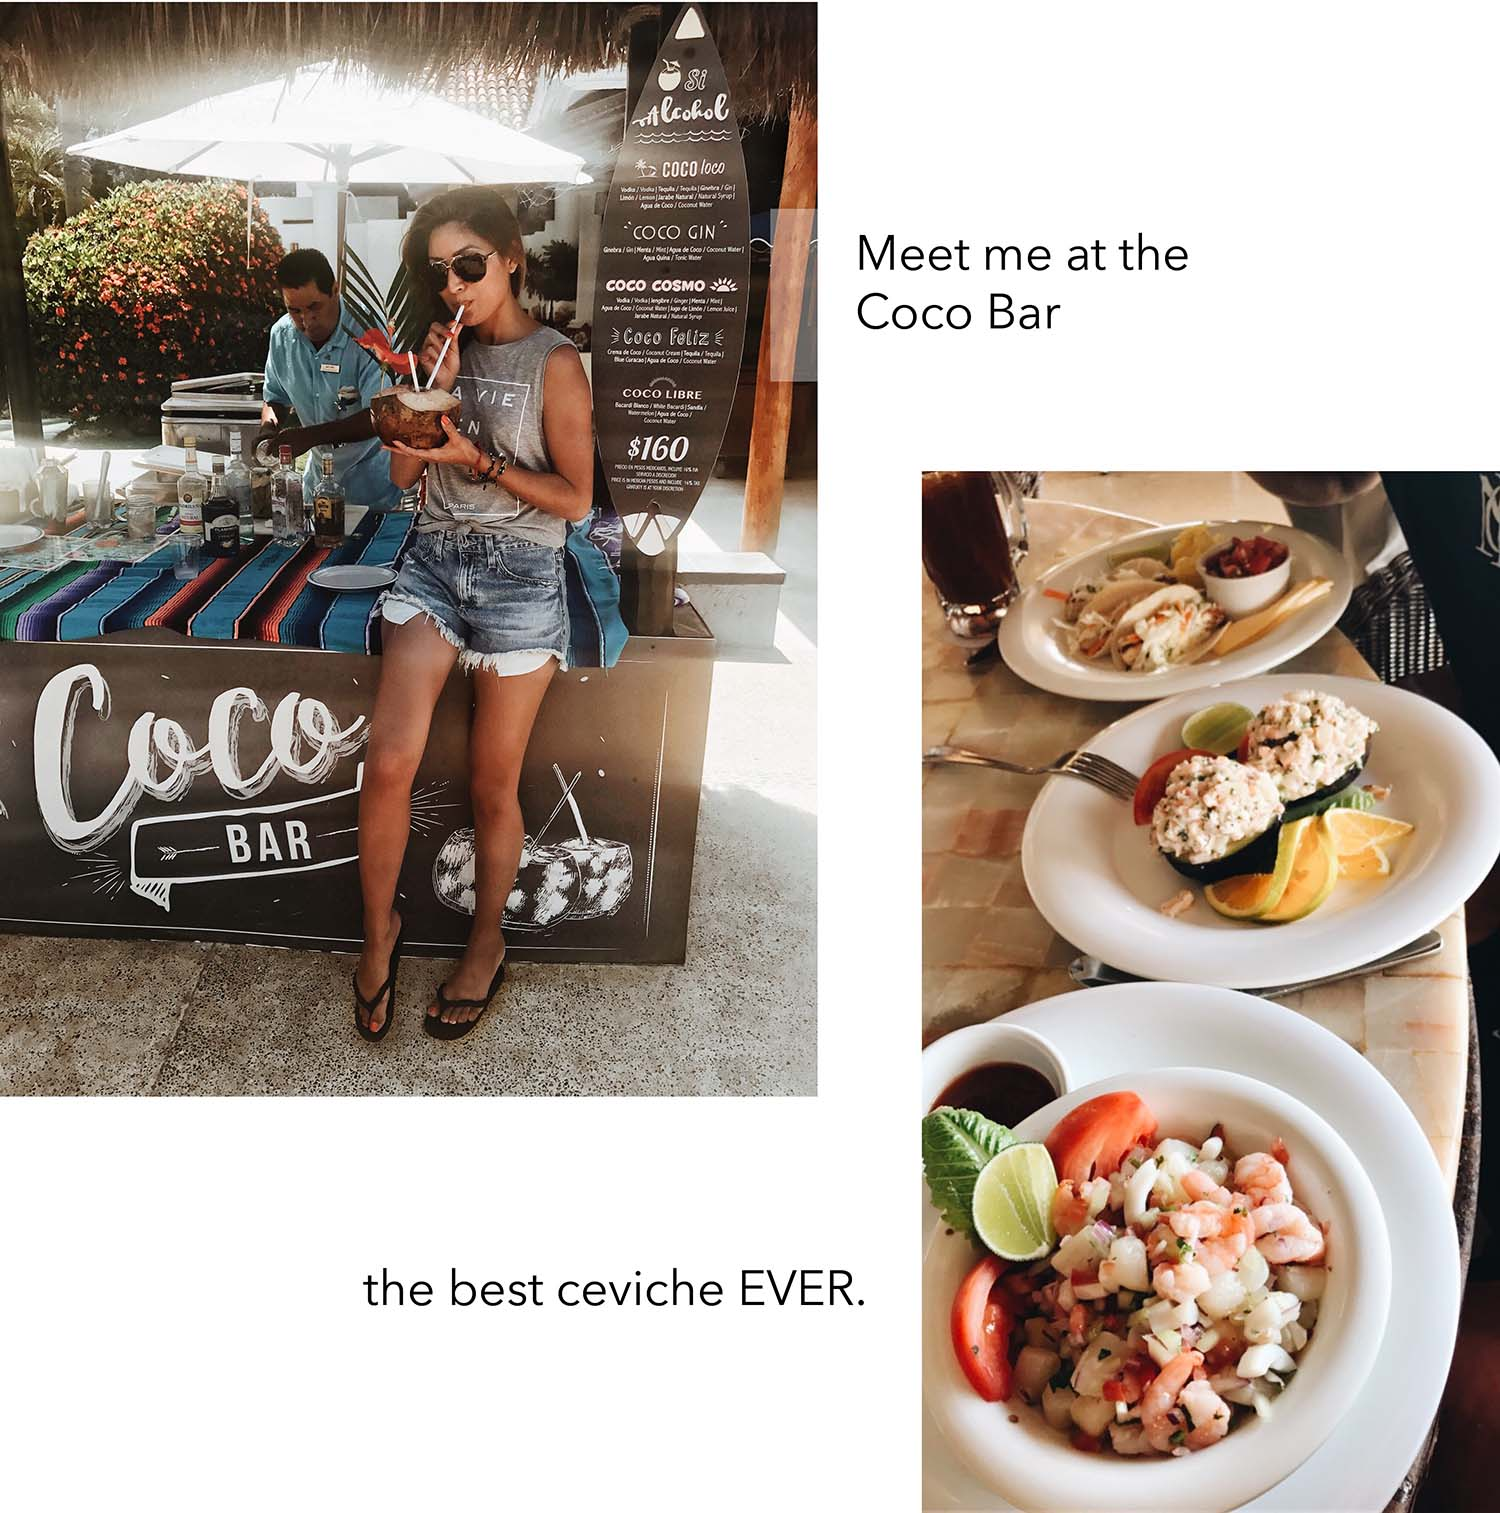 Puerto Vallarta Getaway, puerto vallarta, mexico, vacation, trip, travel, travel blogger, melrodstyle, first wedding anniversary, wedding anniversary, newly weds, fashion blogger, hispanic blogger, latina blogger, mexican blogger, hispanic blogger, vacay, ootd